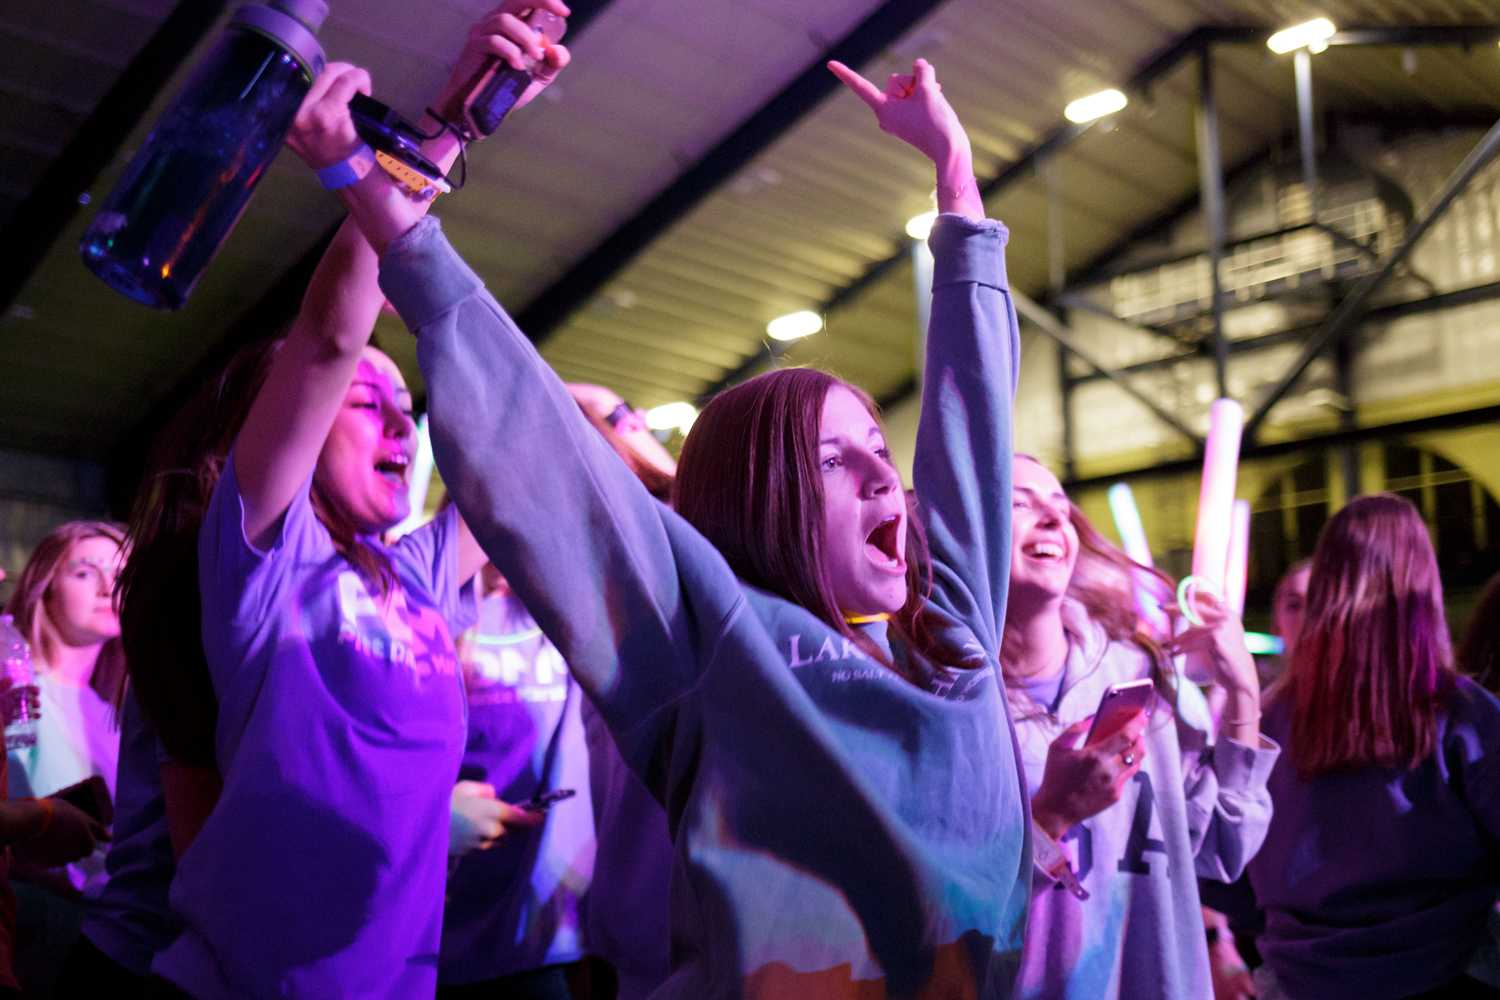 Students dance to techno music during the final hour of Saturday's Pitt Dance Marathon. (Photo by Thomas Yang | Visual Editor)